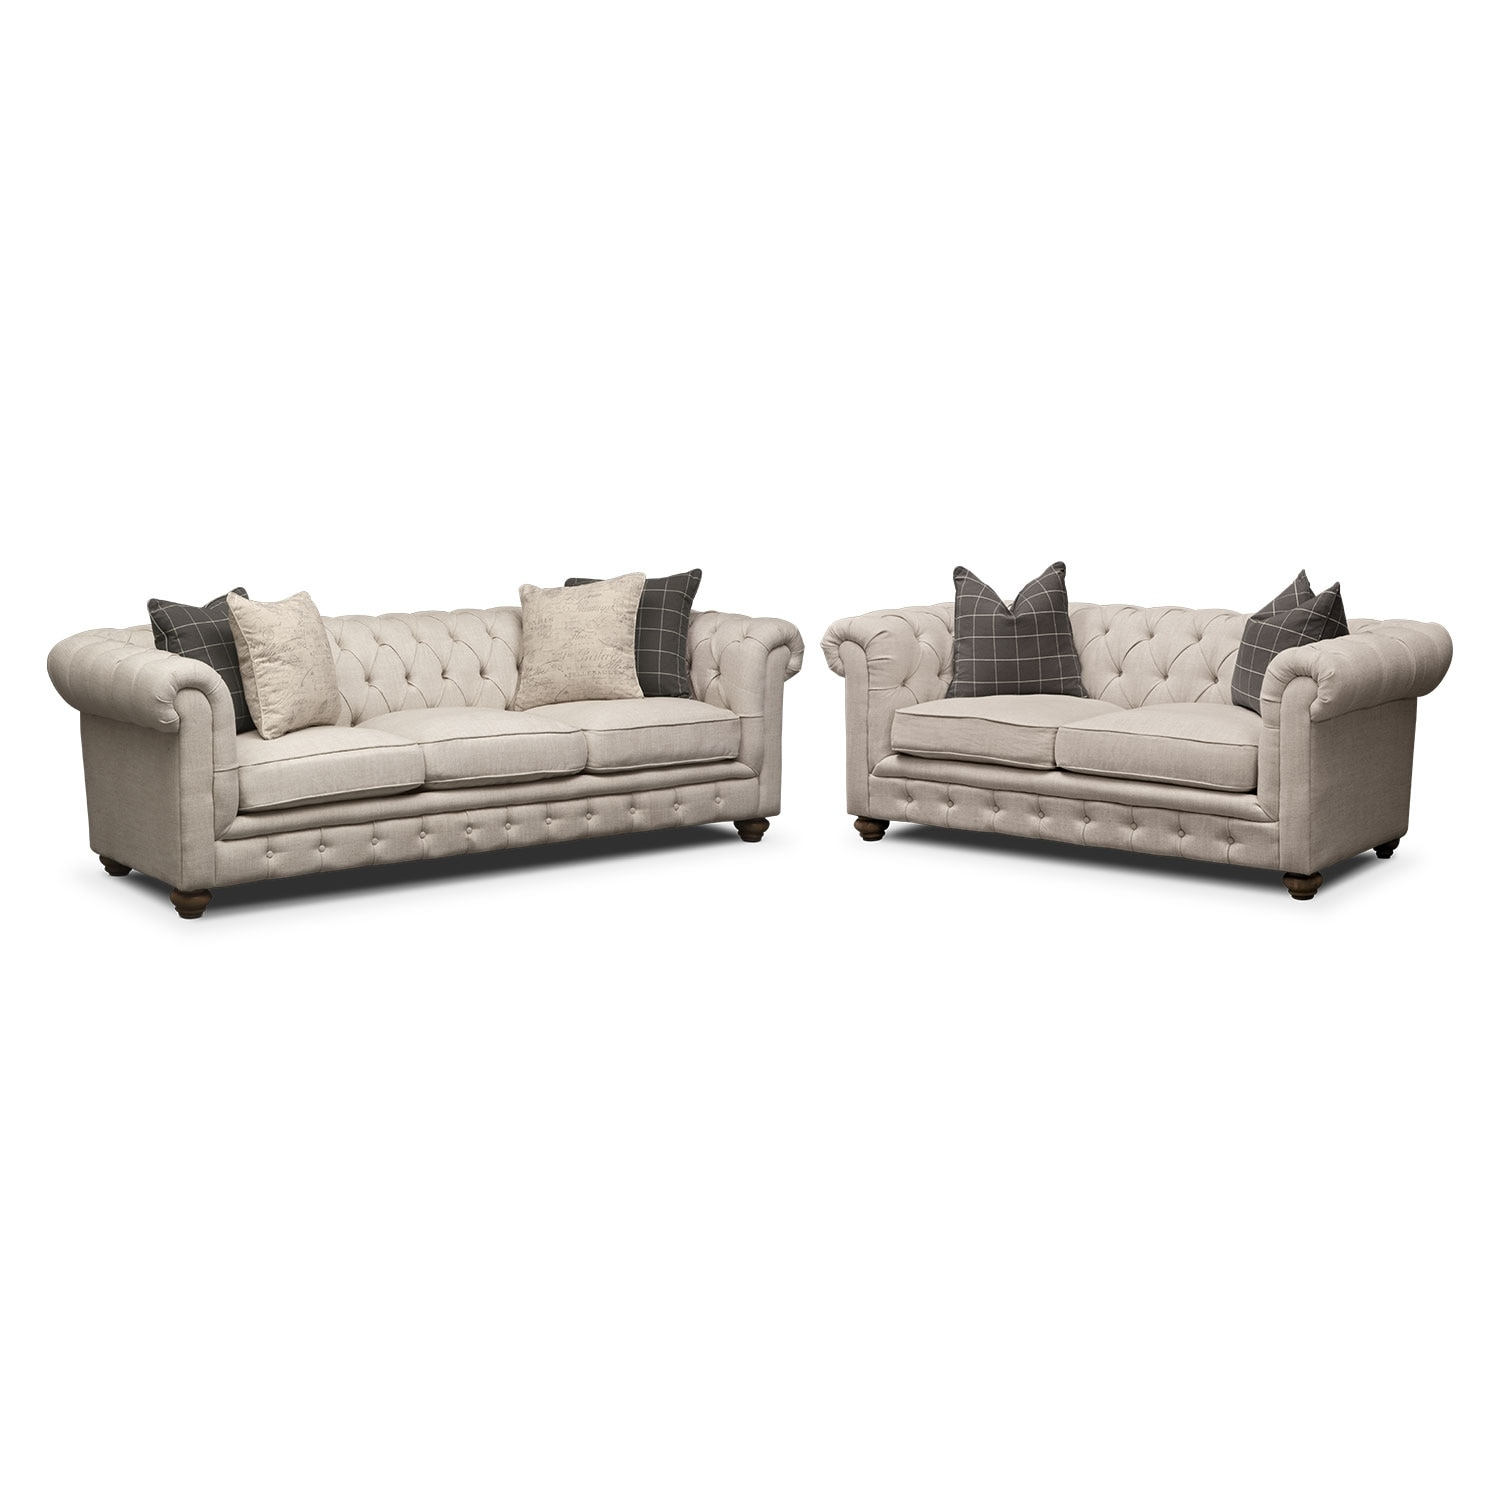 Madeline Sofa and Apartment Sofa Set - Beige